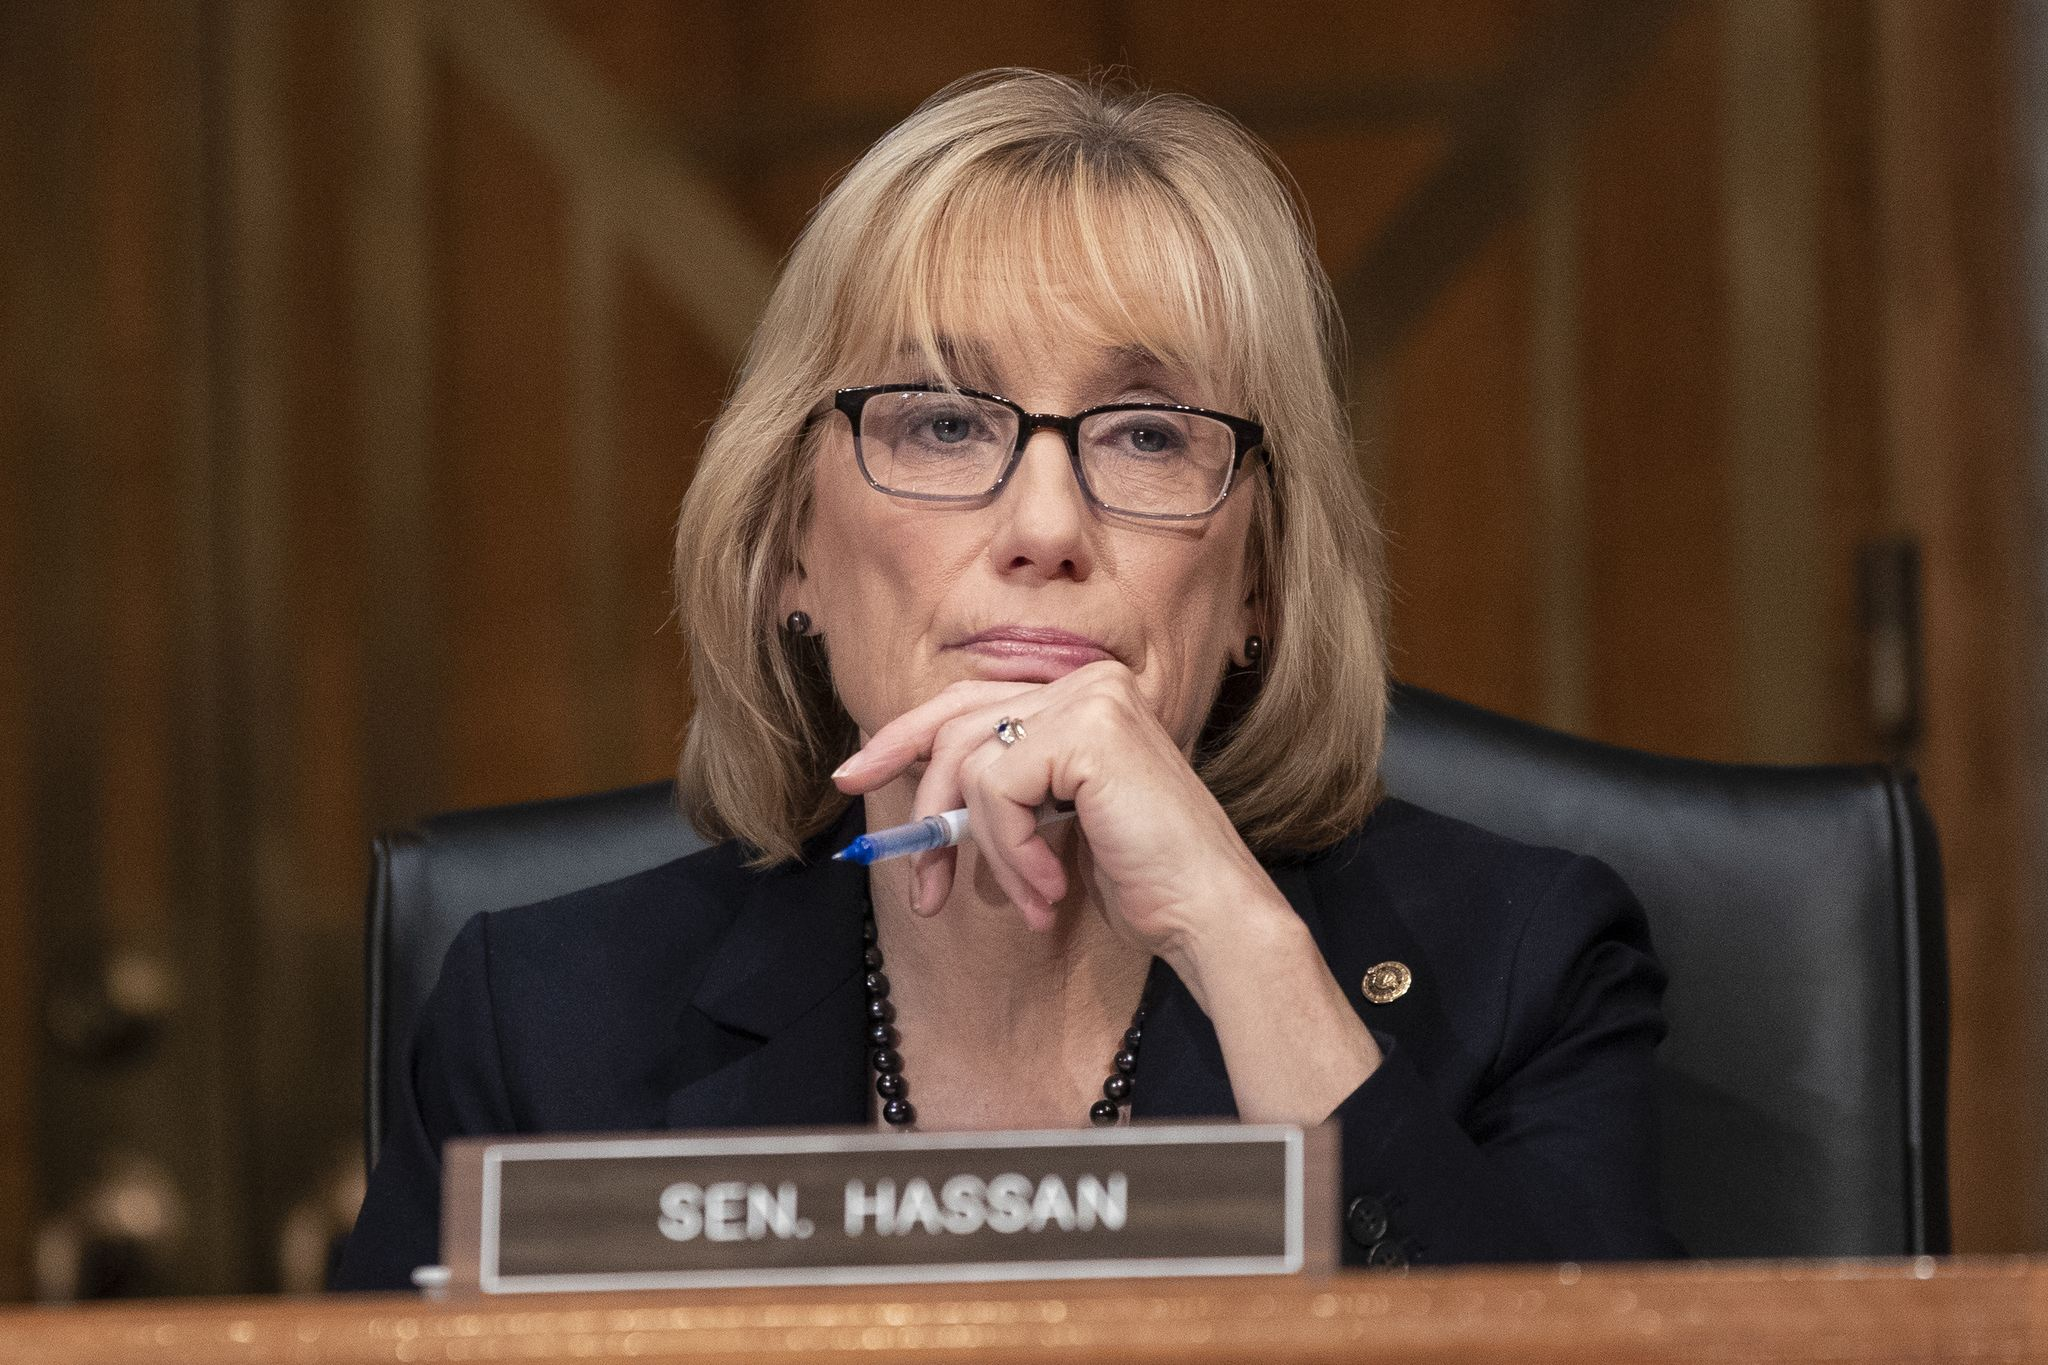 Second Maggie Hassan aide charged with doxxing Republican senators